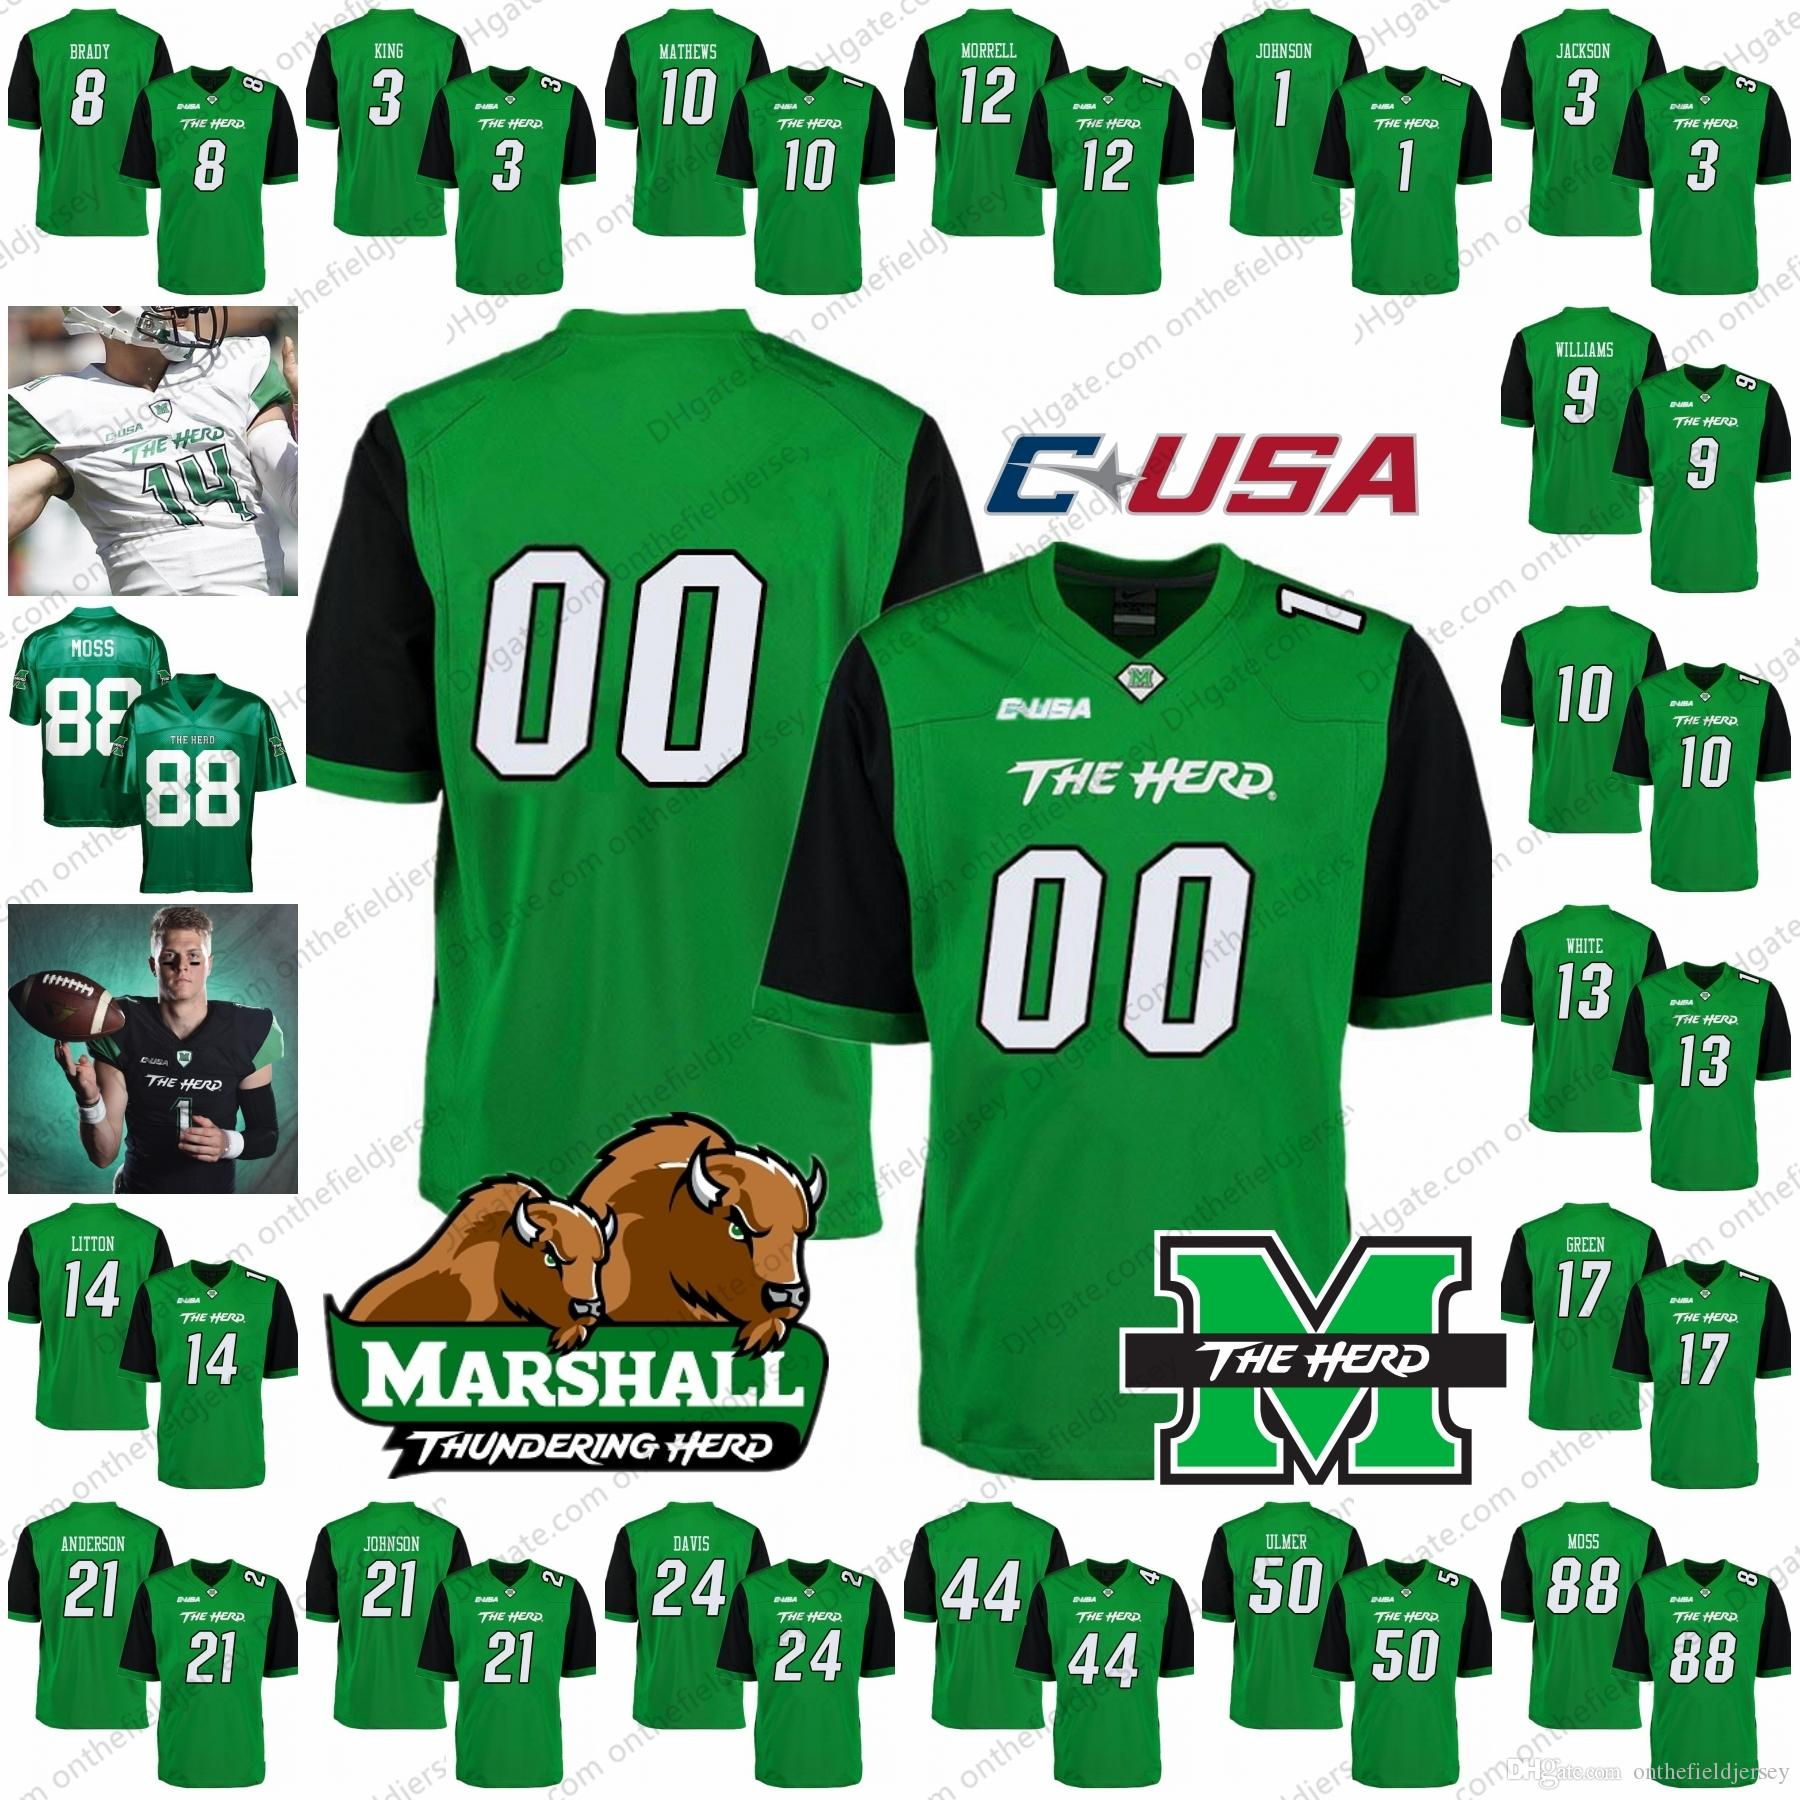 924328f35 Custom Marshall Thundering Herd NCAA College Football Jersey Any Name  Number  3 Tyler King 14 Chase Litton 17 Isaiah Green White Black S 4XL UK  2019 From ...